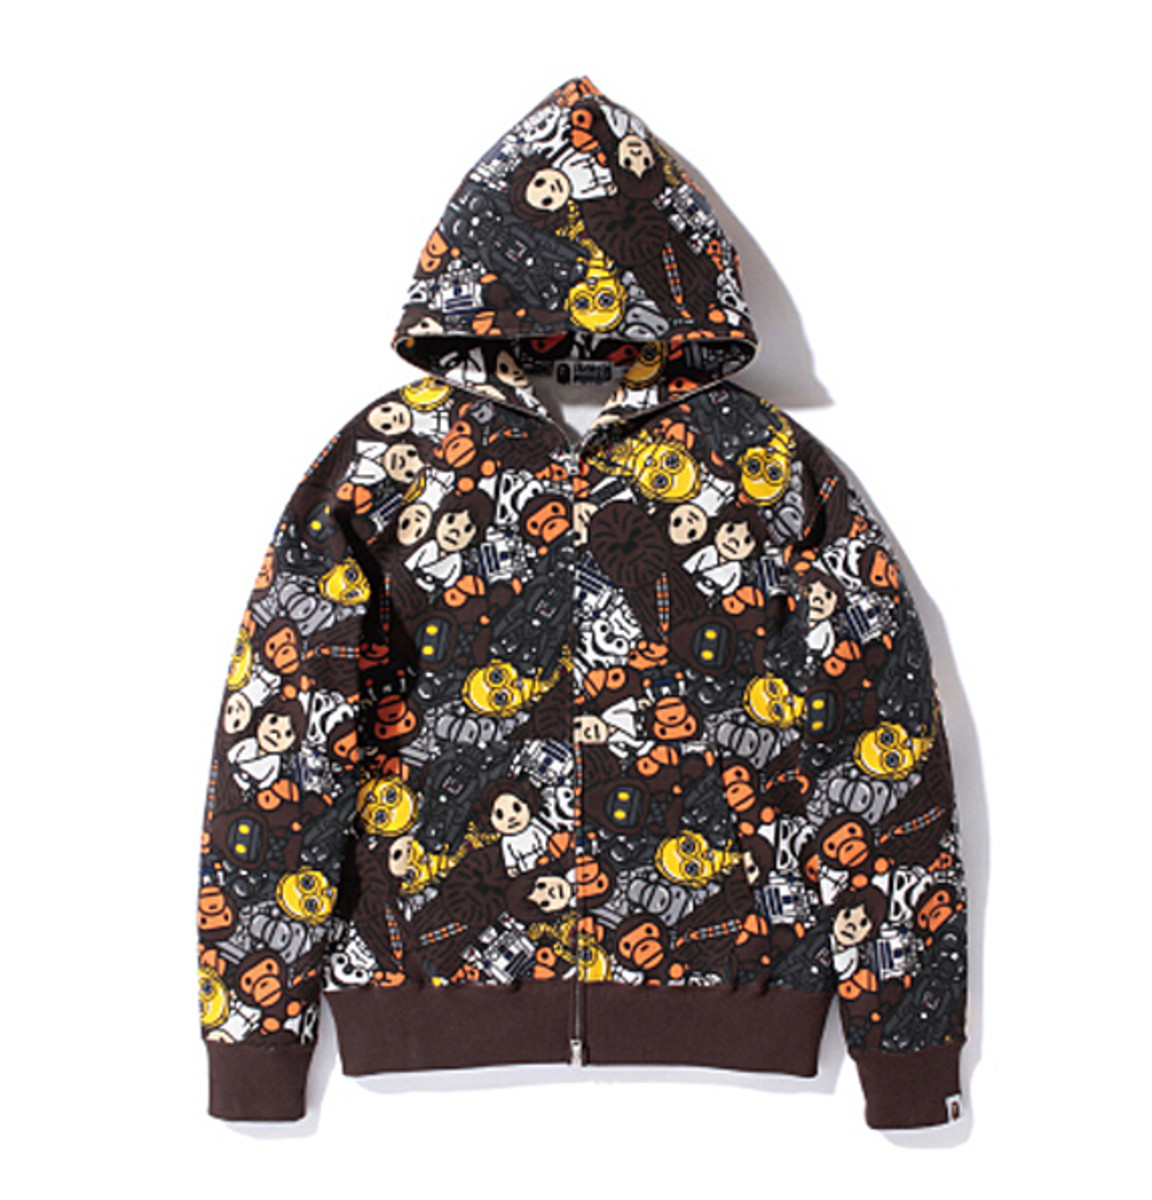 a-bathing-ape-bape-star-wars-delivery-2-02